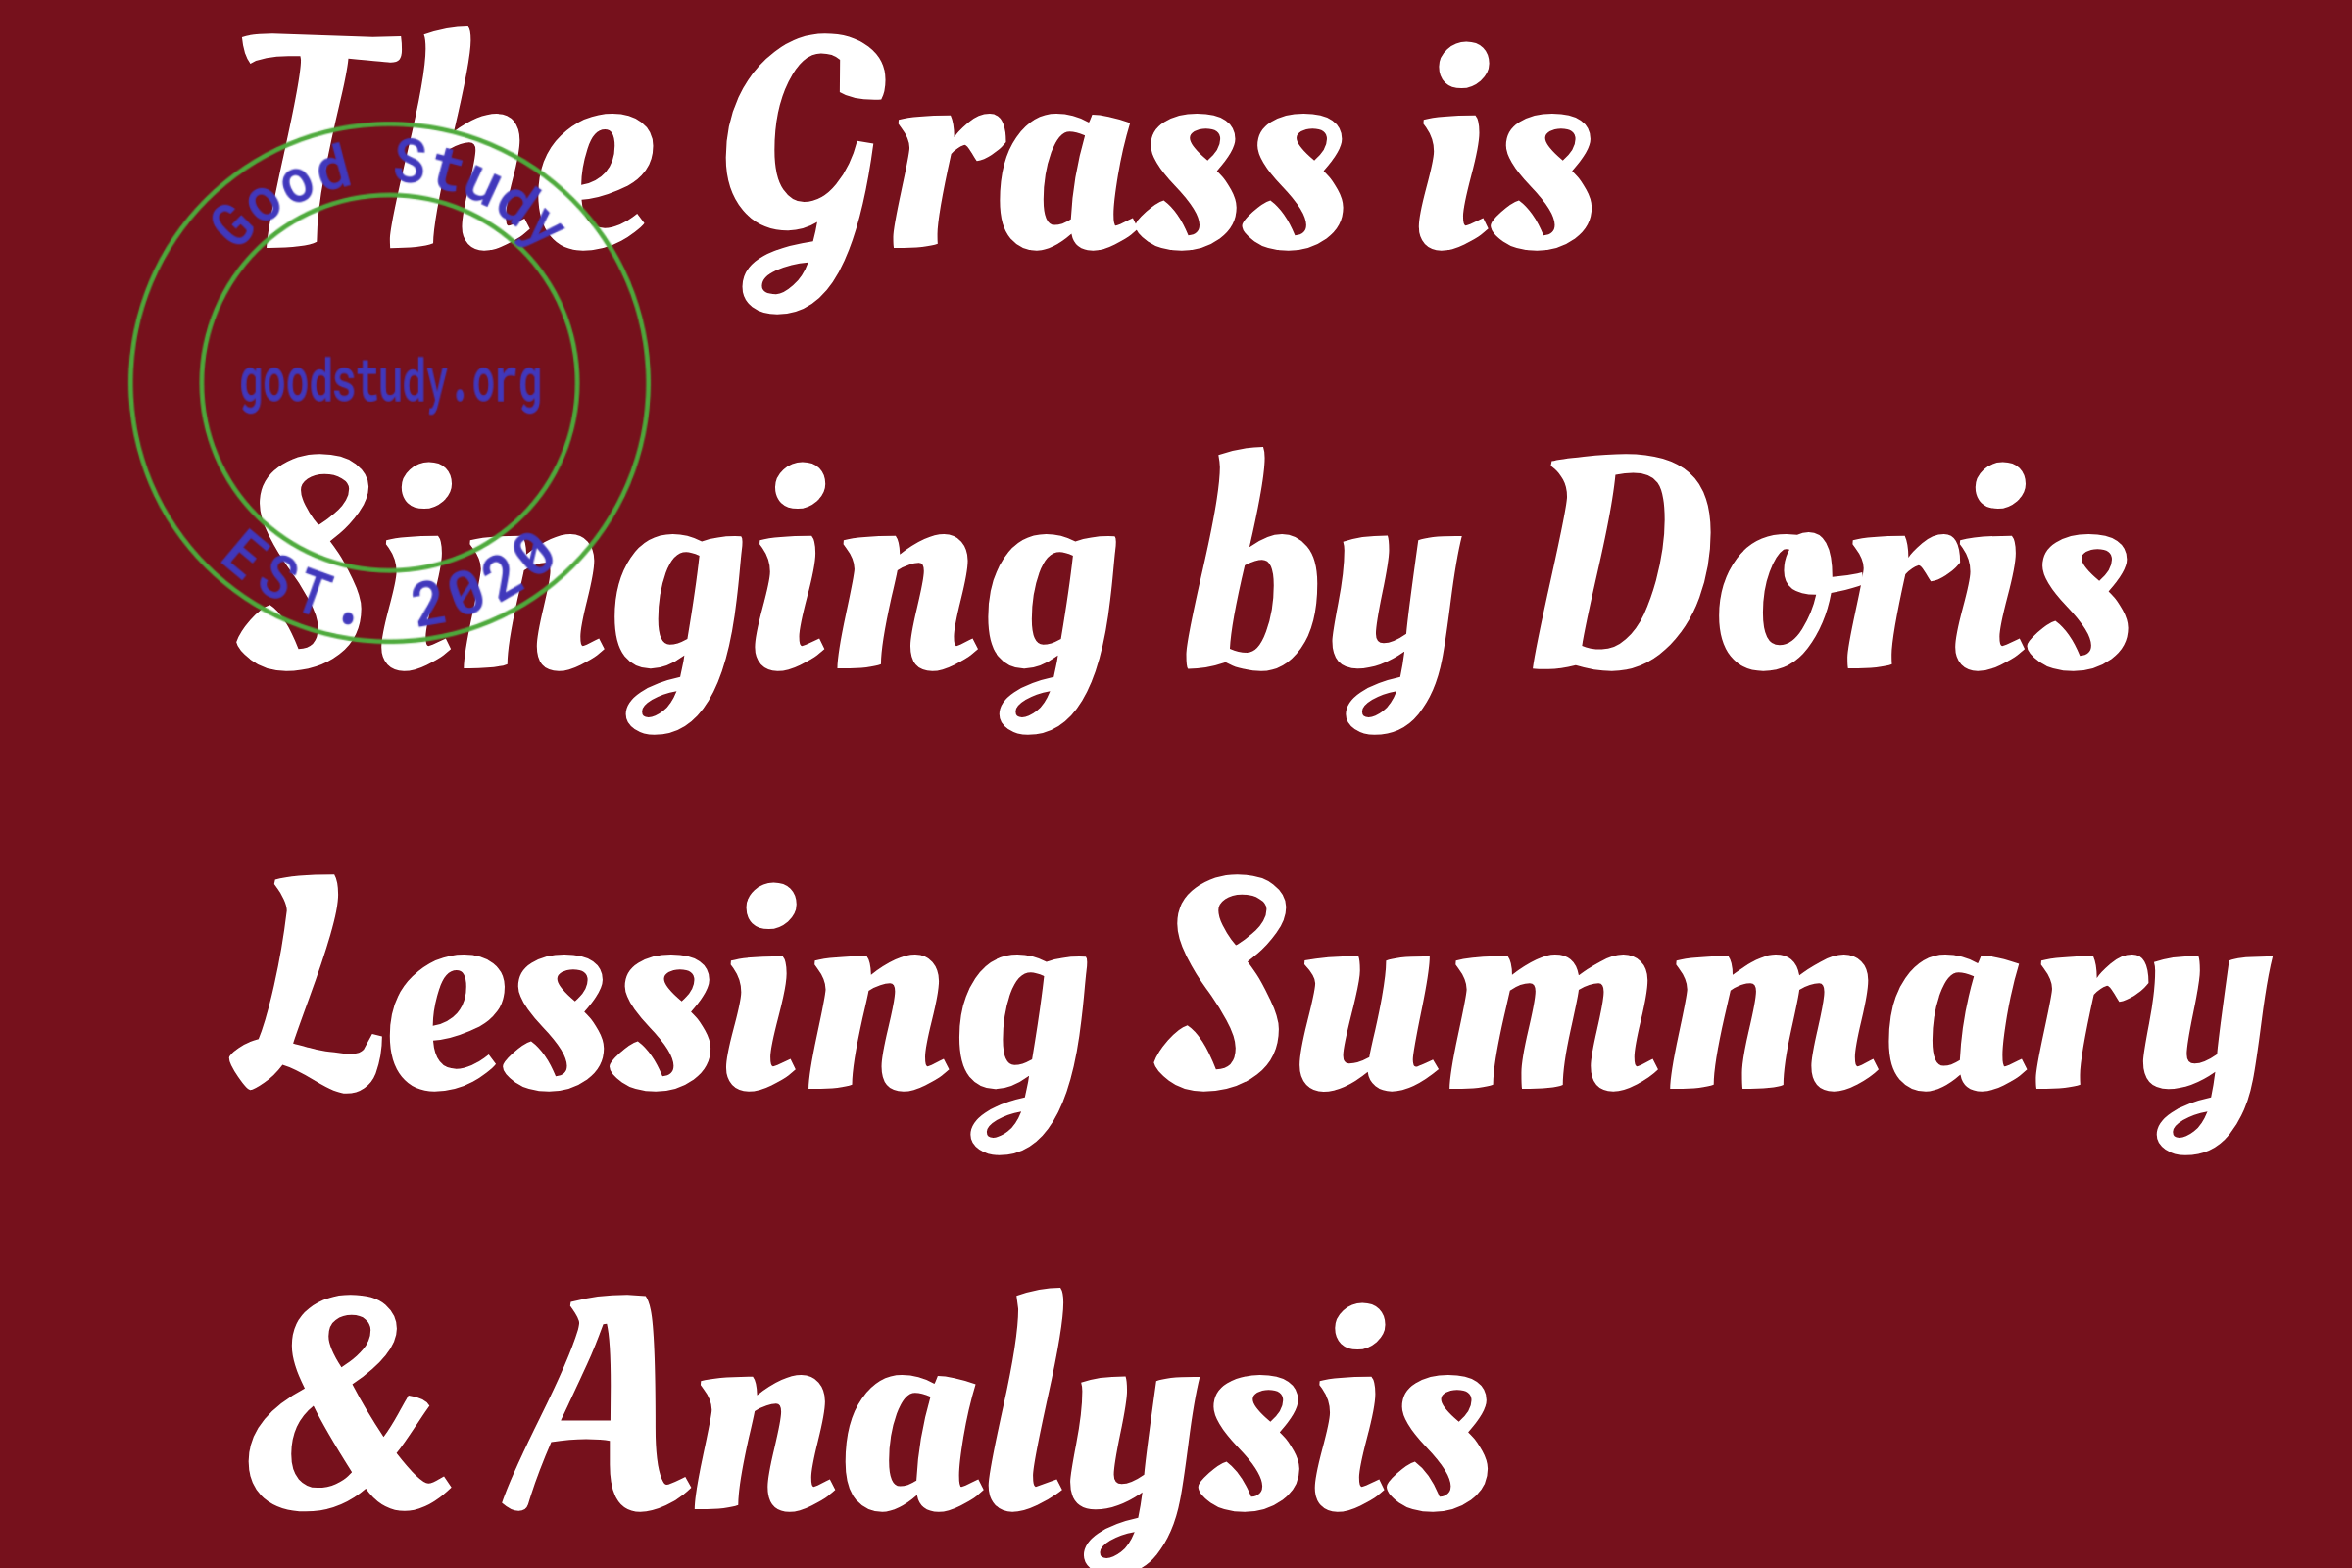 The Grass is Singing by Doris Lessing Summary & Analysis